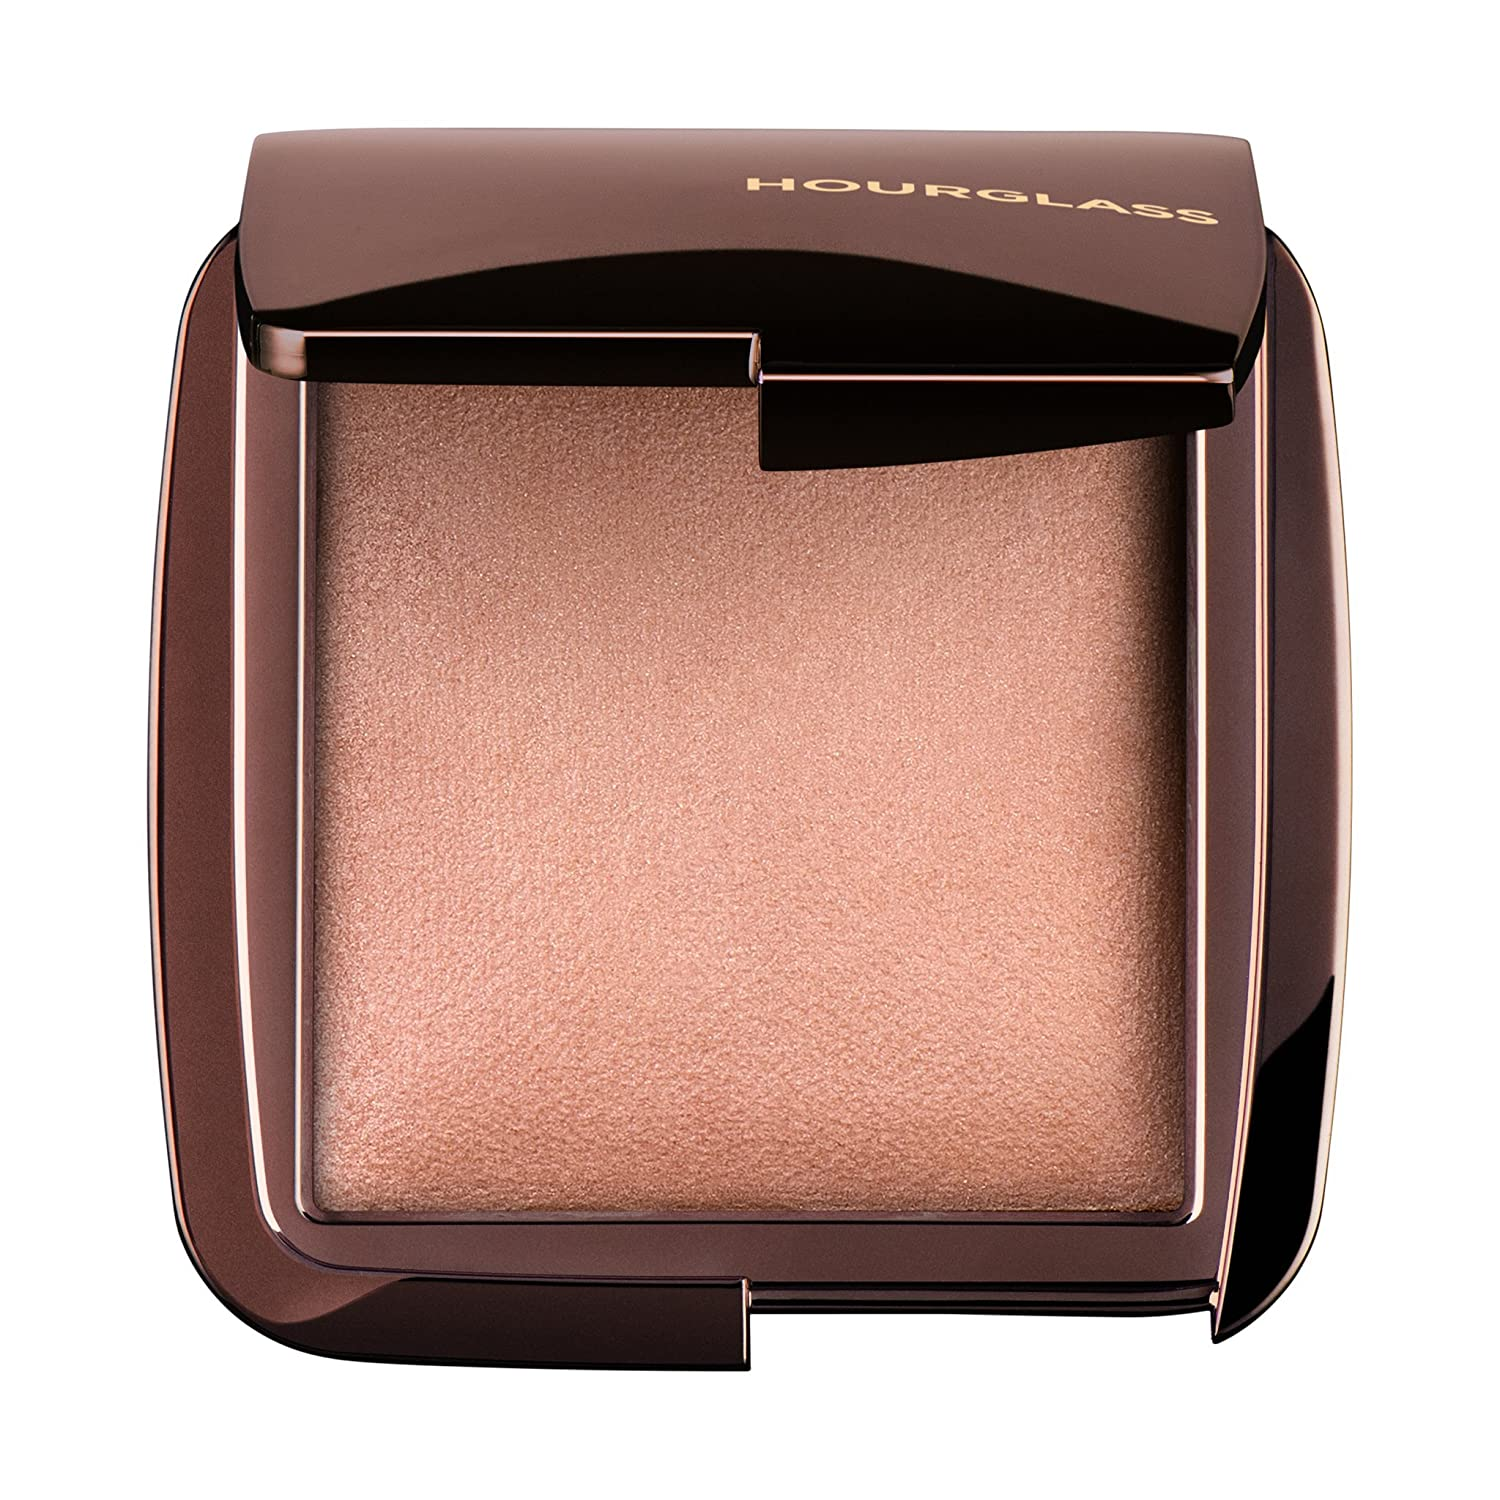 Hourglass Ambient® Lighting Powder - Radiant Light B00B195H2U